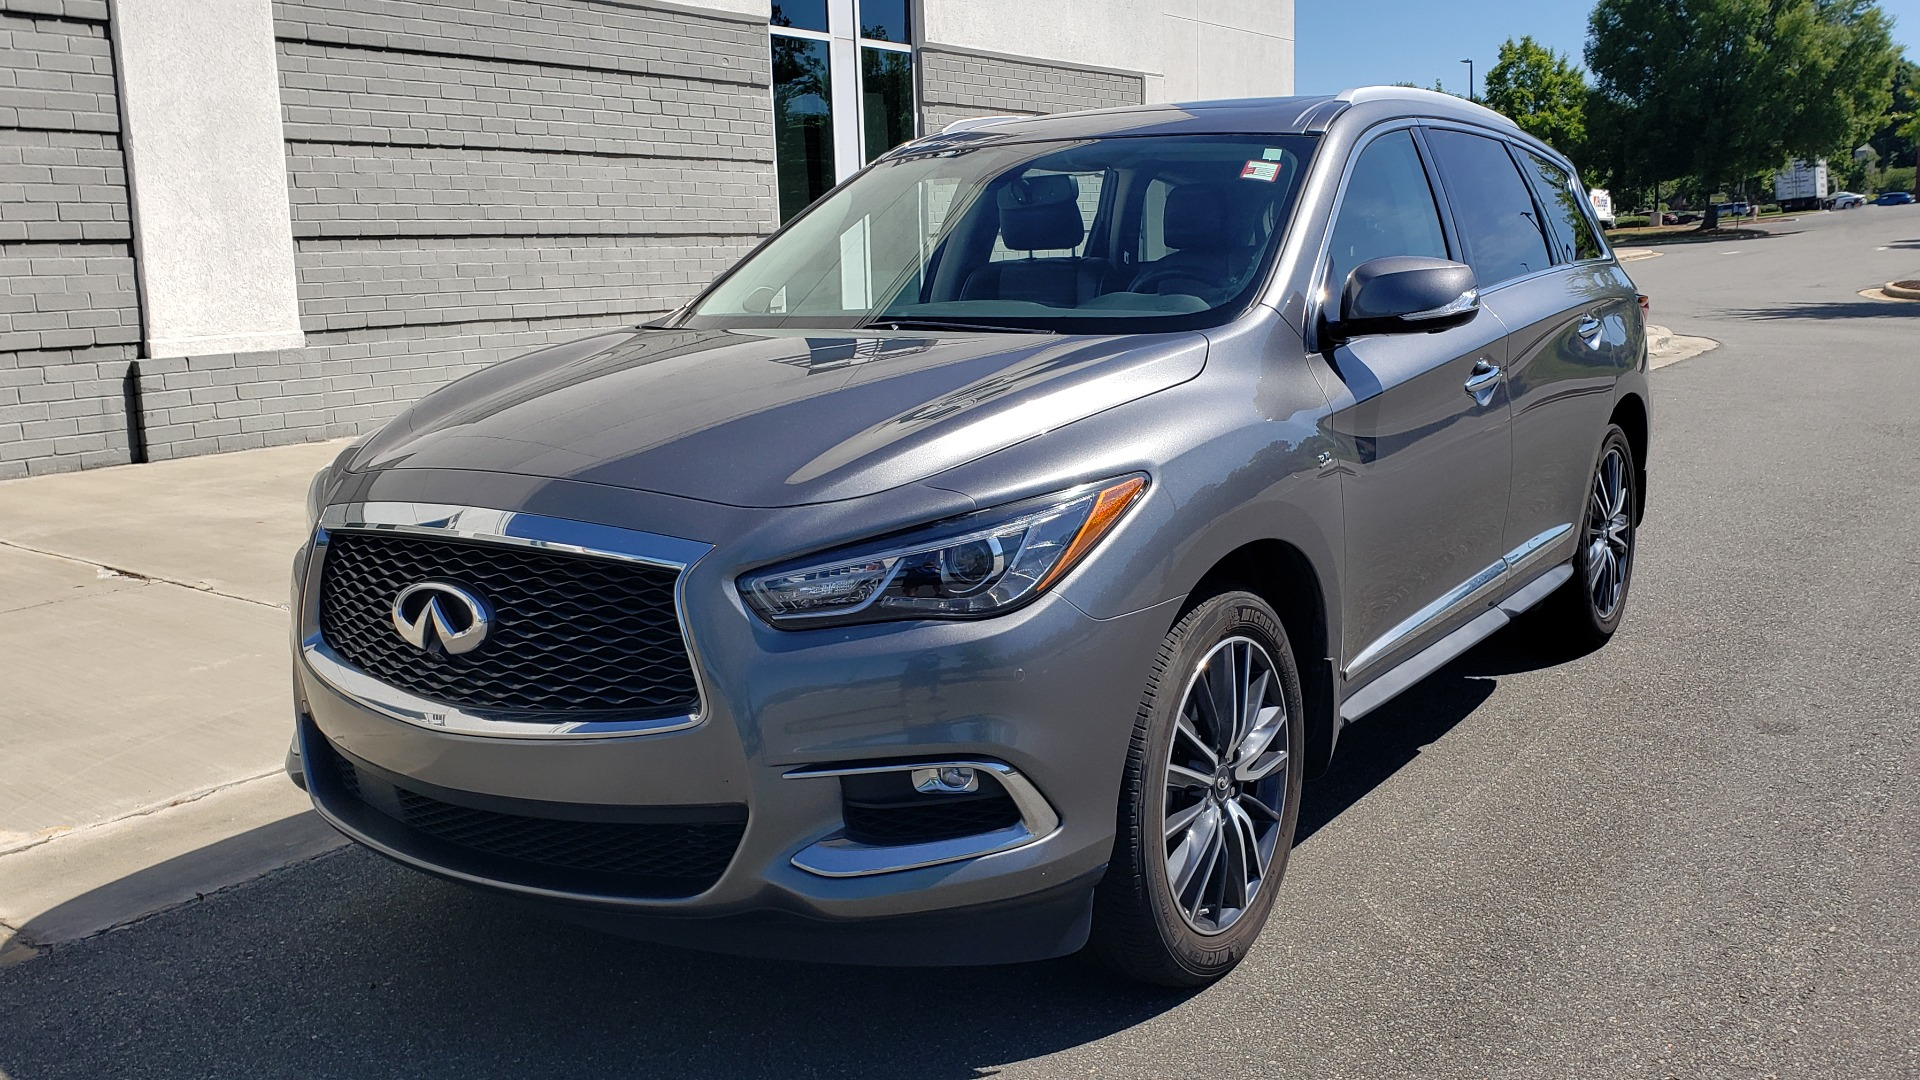 Used 2018 INFINITI QX60 3.5L V6 / FWD / CVT TRANS / NAV / SUNROOF / 3-ROWS / REARVIEW for sale $31,999 at Formula Imports in Charlotte NC 28227 3